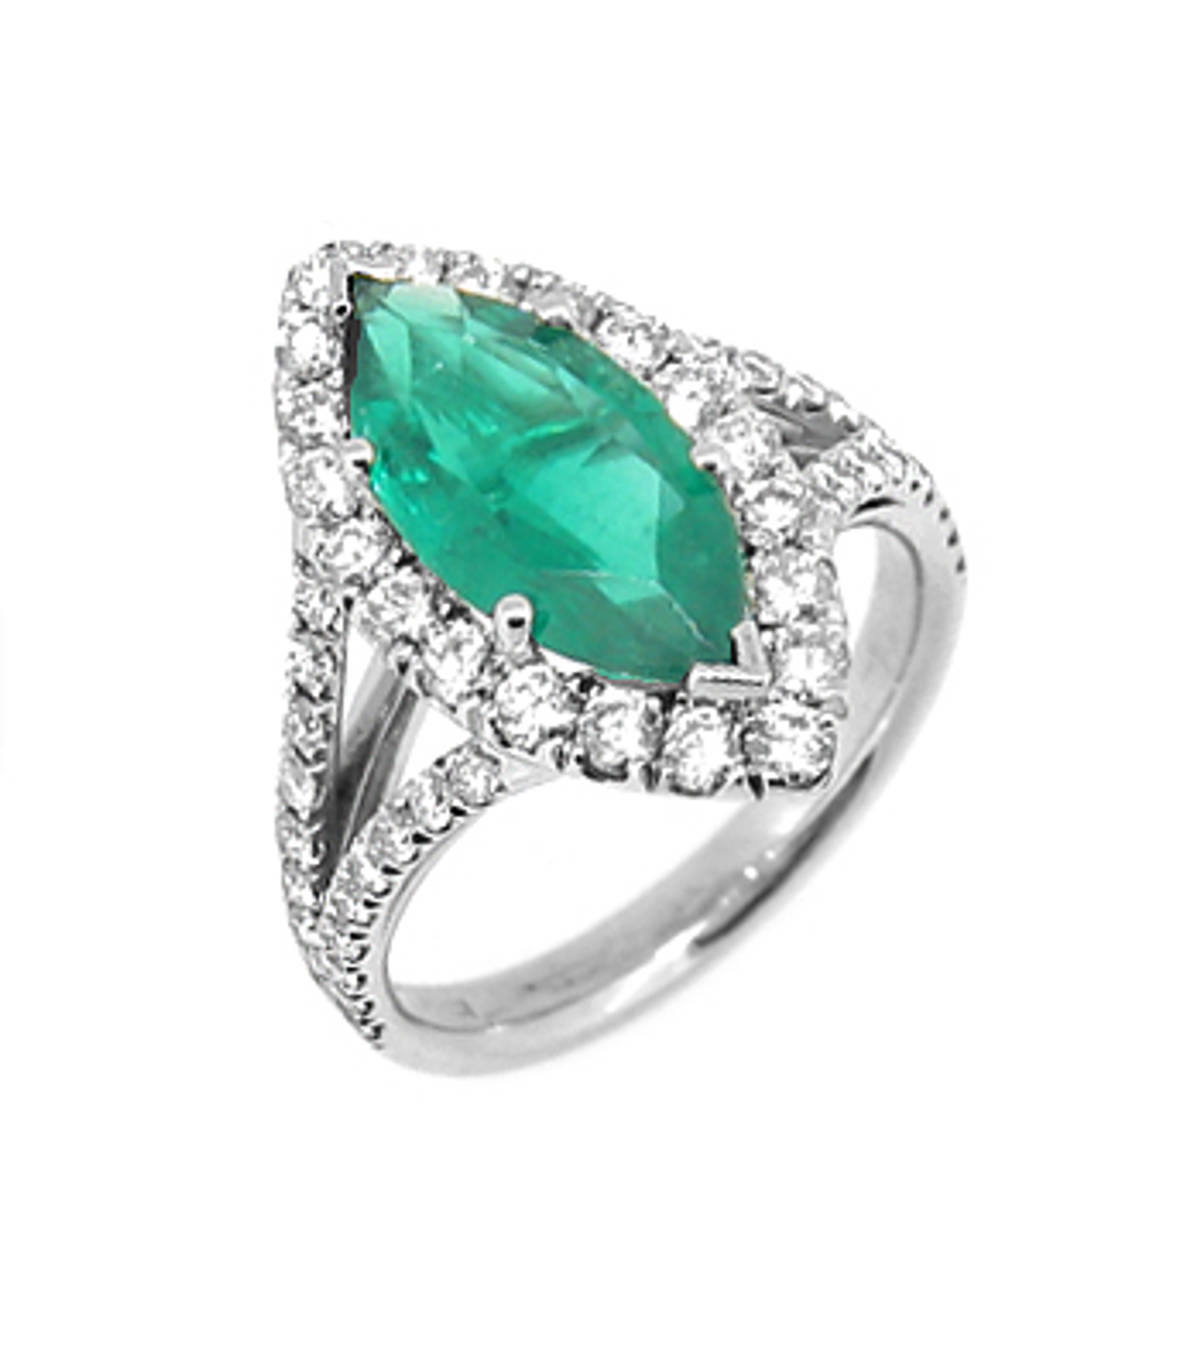 18 carat white gold engagement/dress ring with 1.80cts marquise shape emerald and with 1.02cts diamonds